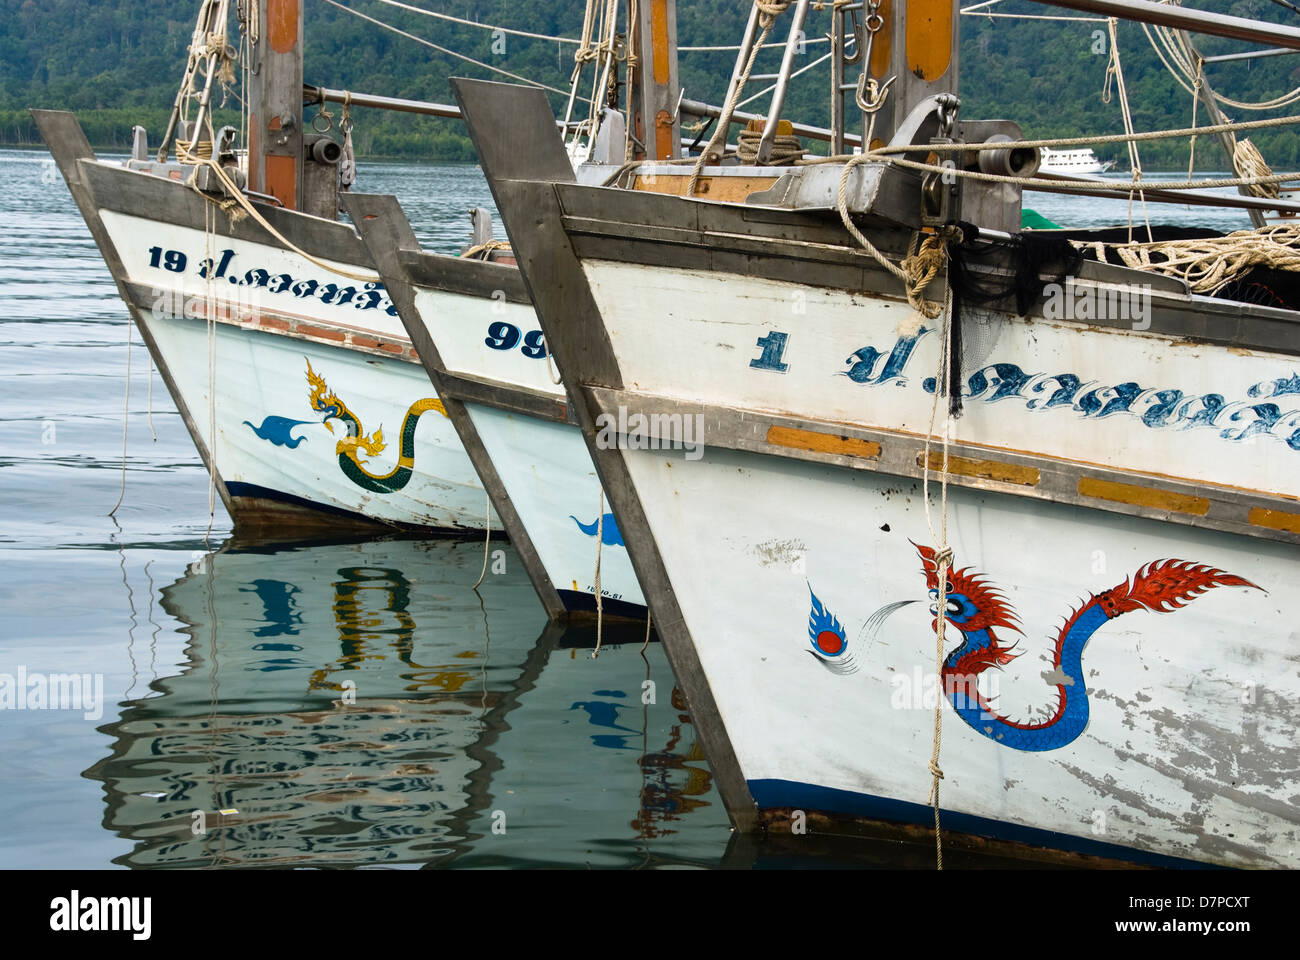 Harbour of Kao Lak, Boote im Hafen, Drachenboote - Stock Image